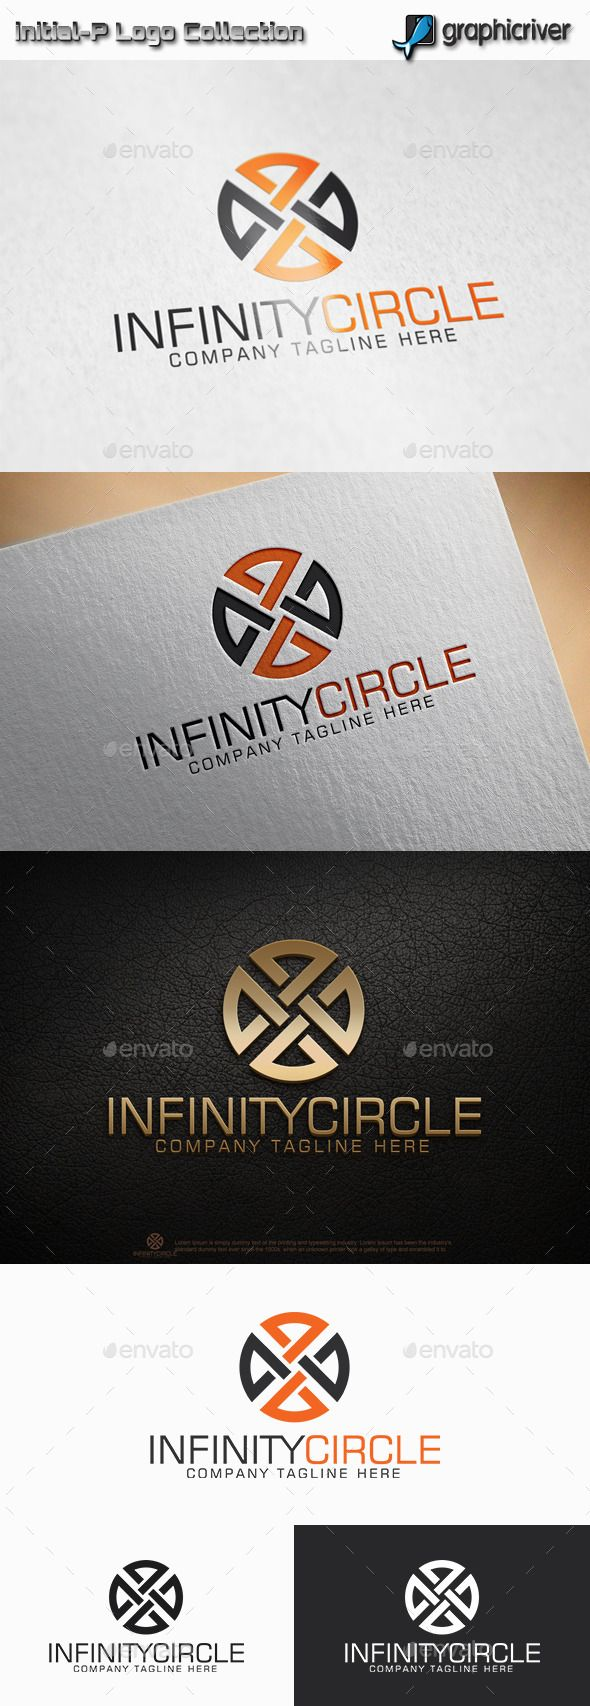 Infinity Circle  Logo Design Template Vector #logotype Download it here: http://graphicriver.net/item/infinity-circle-logo/11514735?s_rank=800?ref=nexion